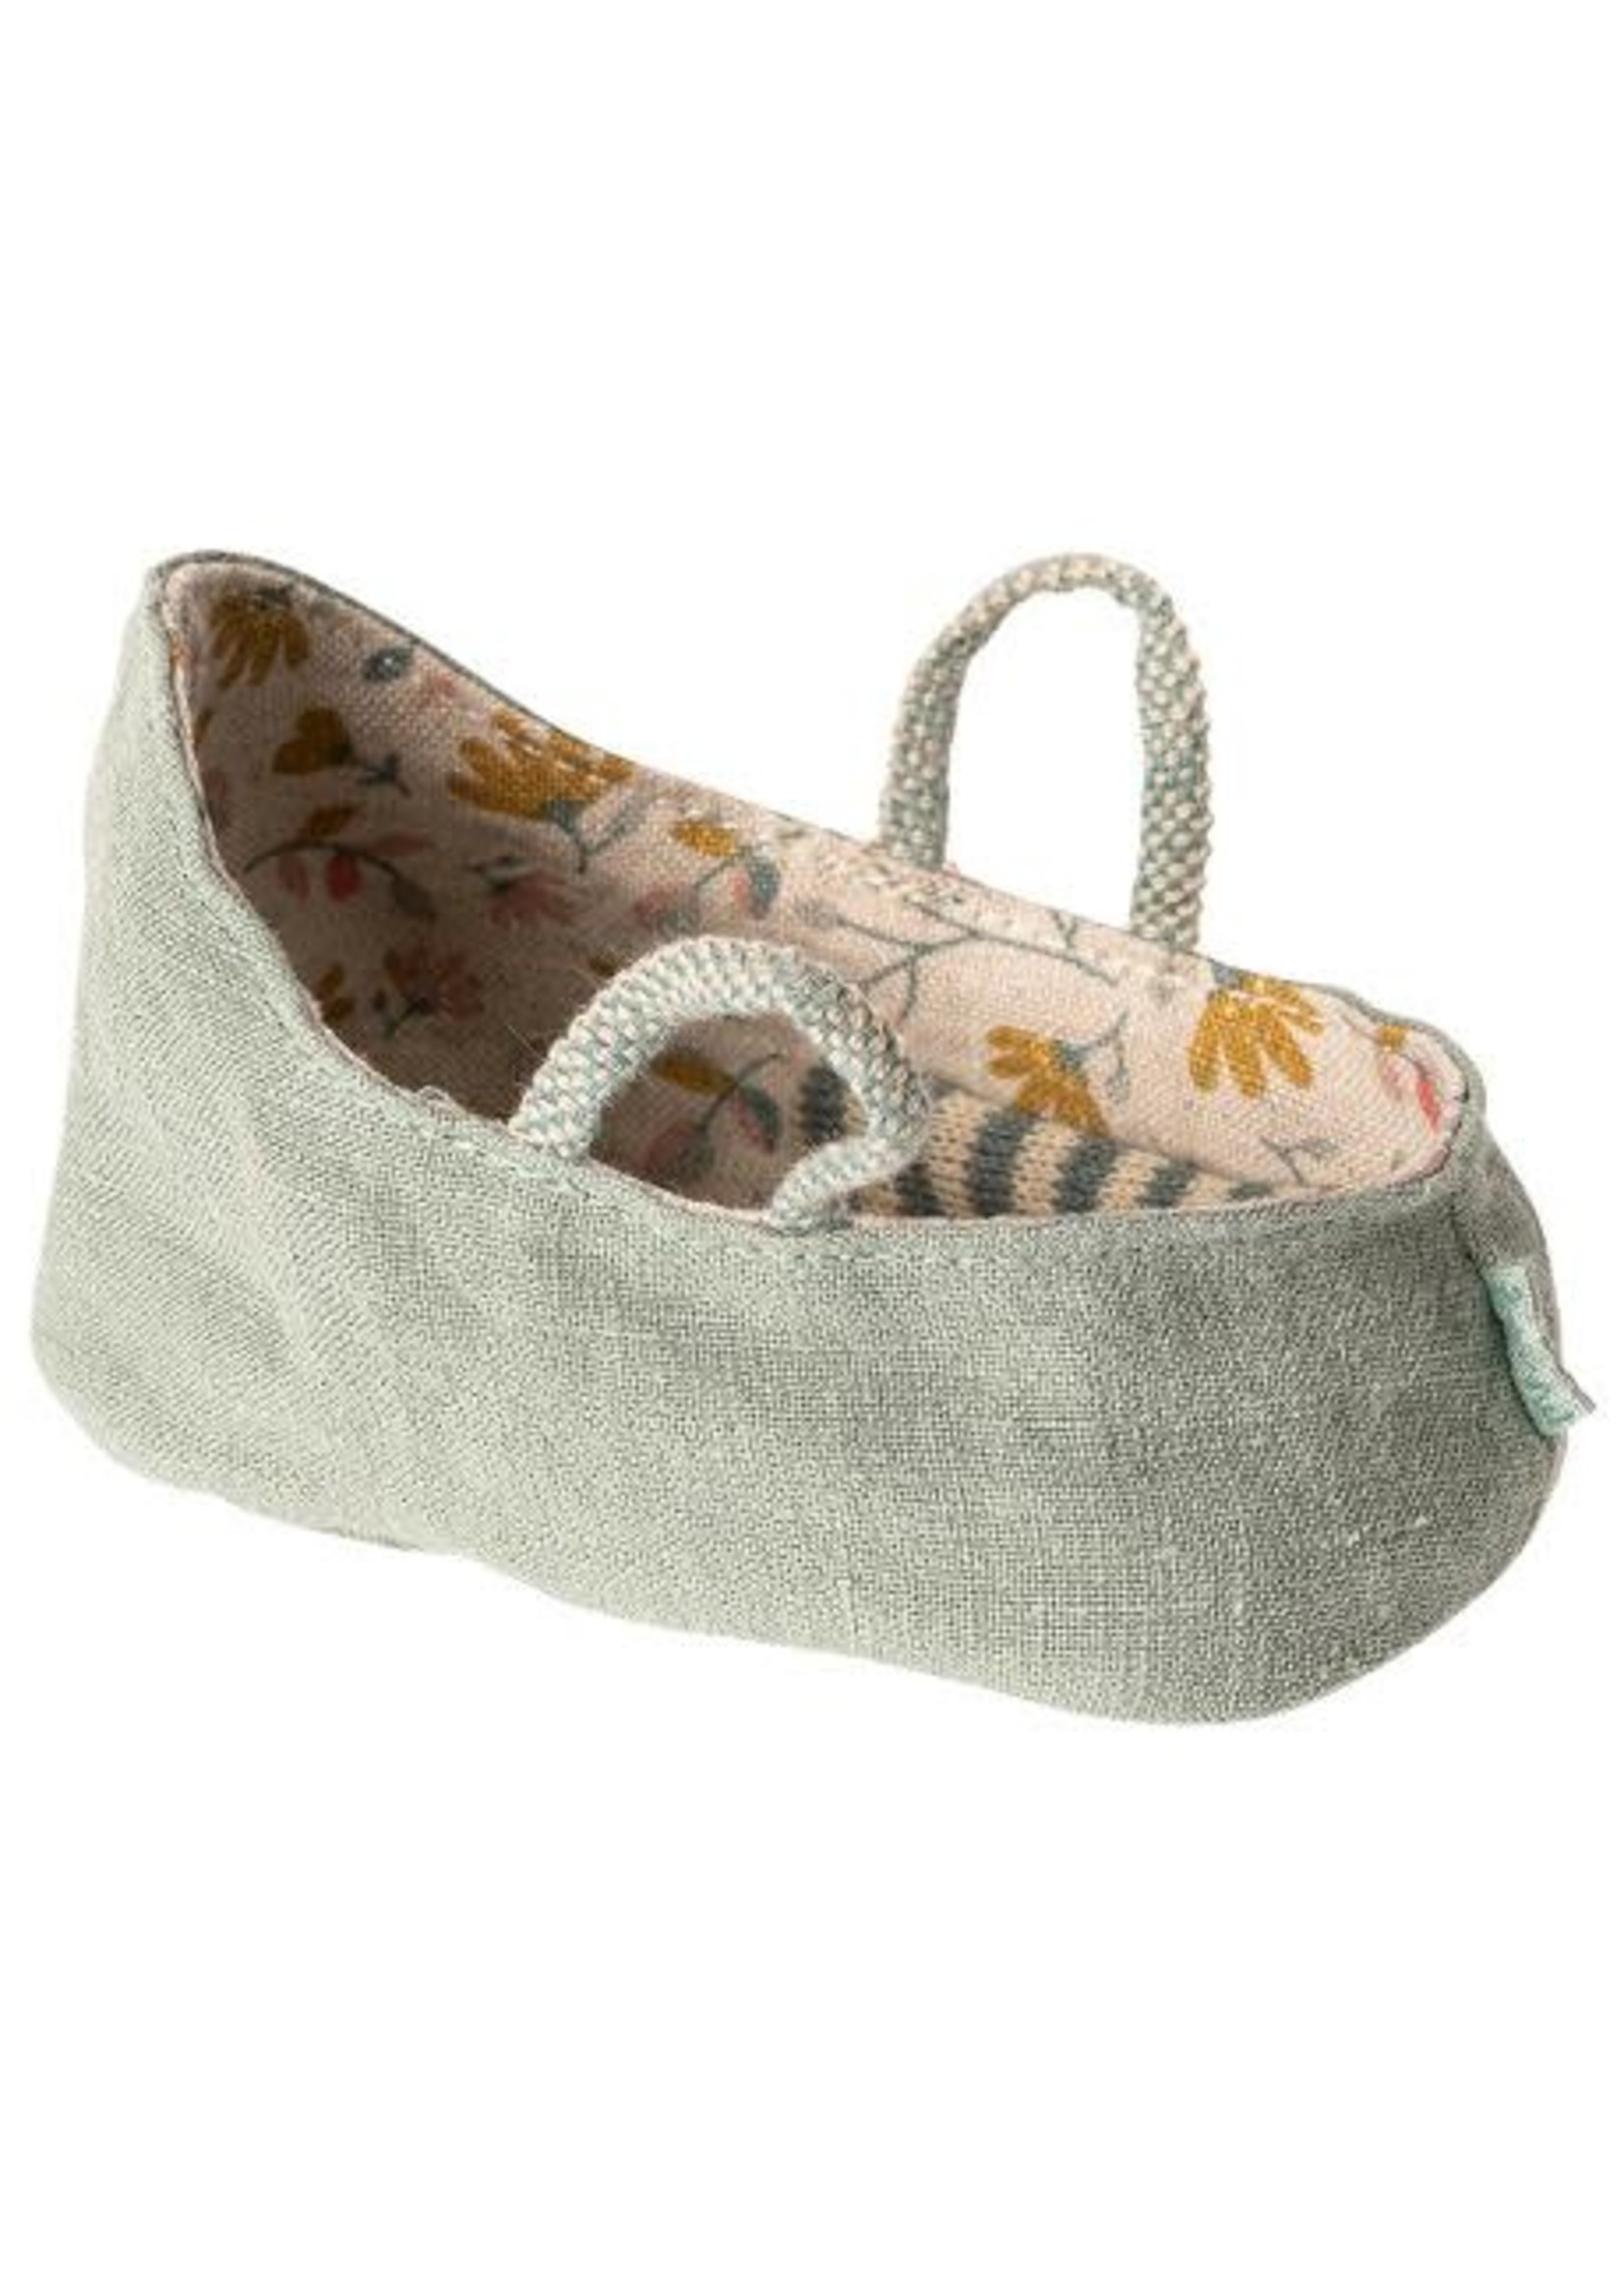 Maileg My Size - Carry Cot - Dusty Green